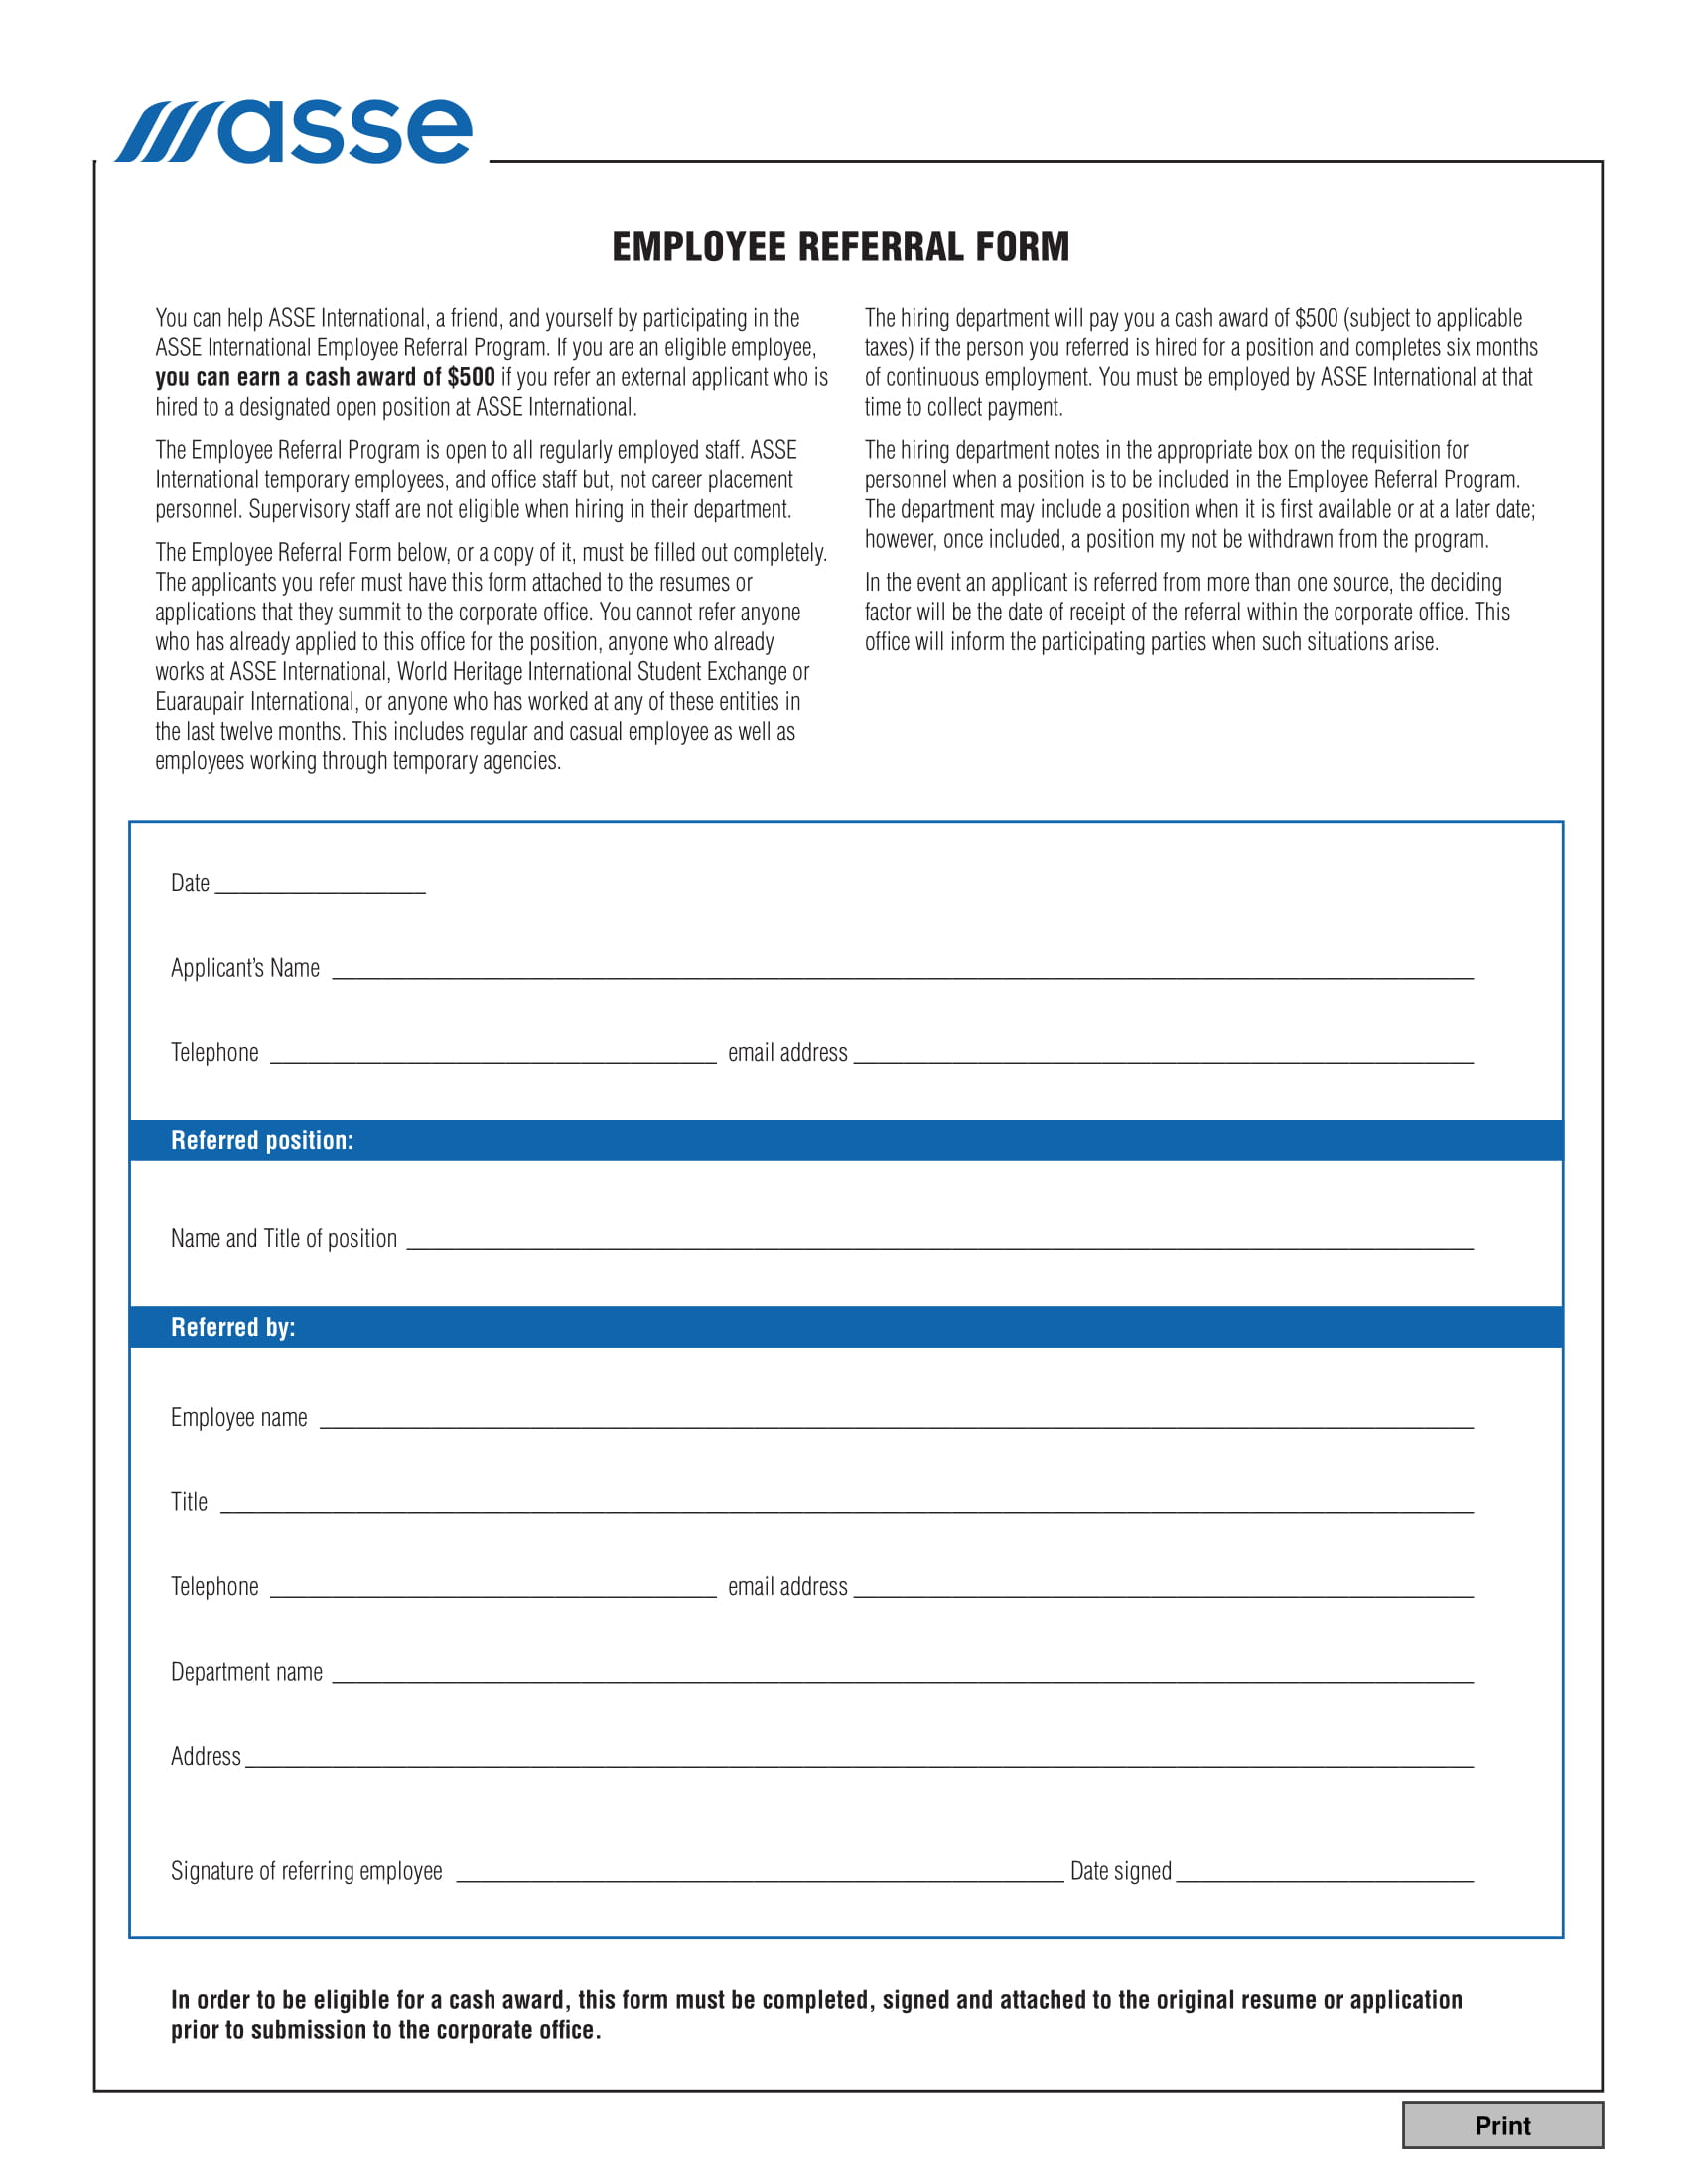 hr forms pdf - Ronni kaptanband co